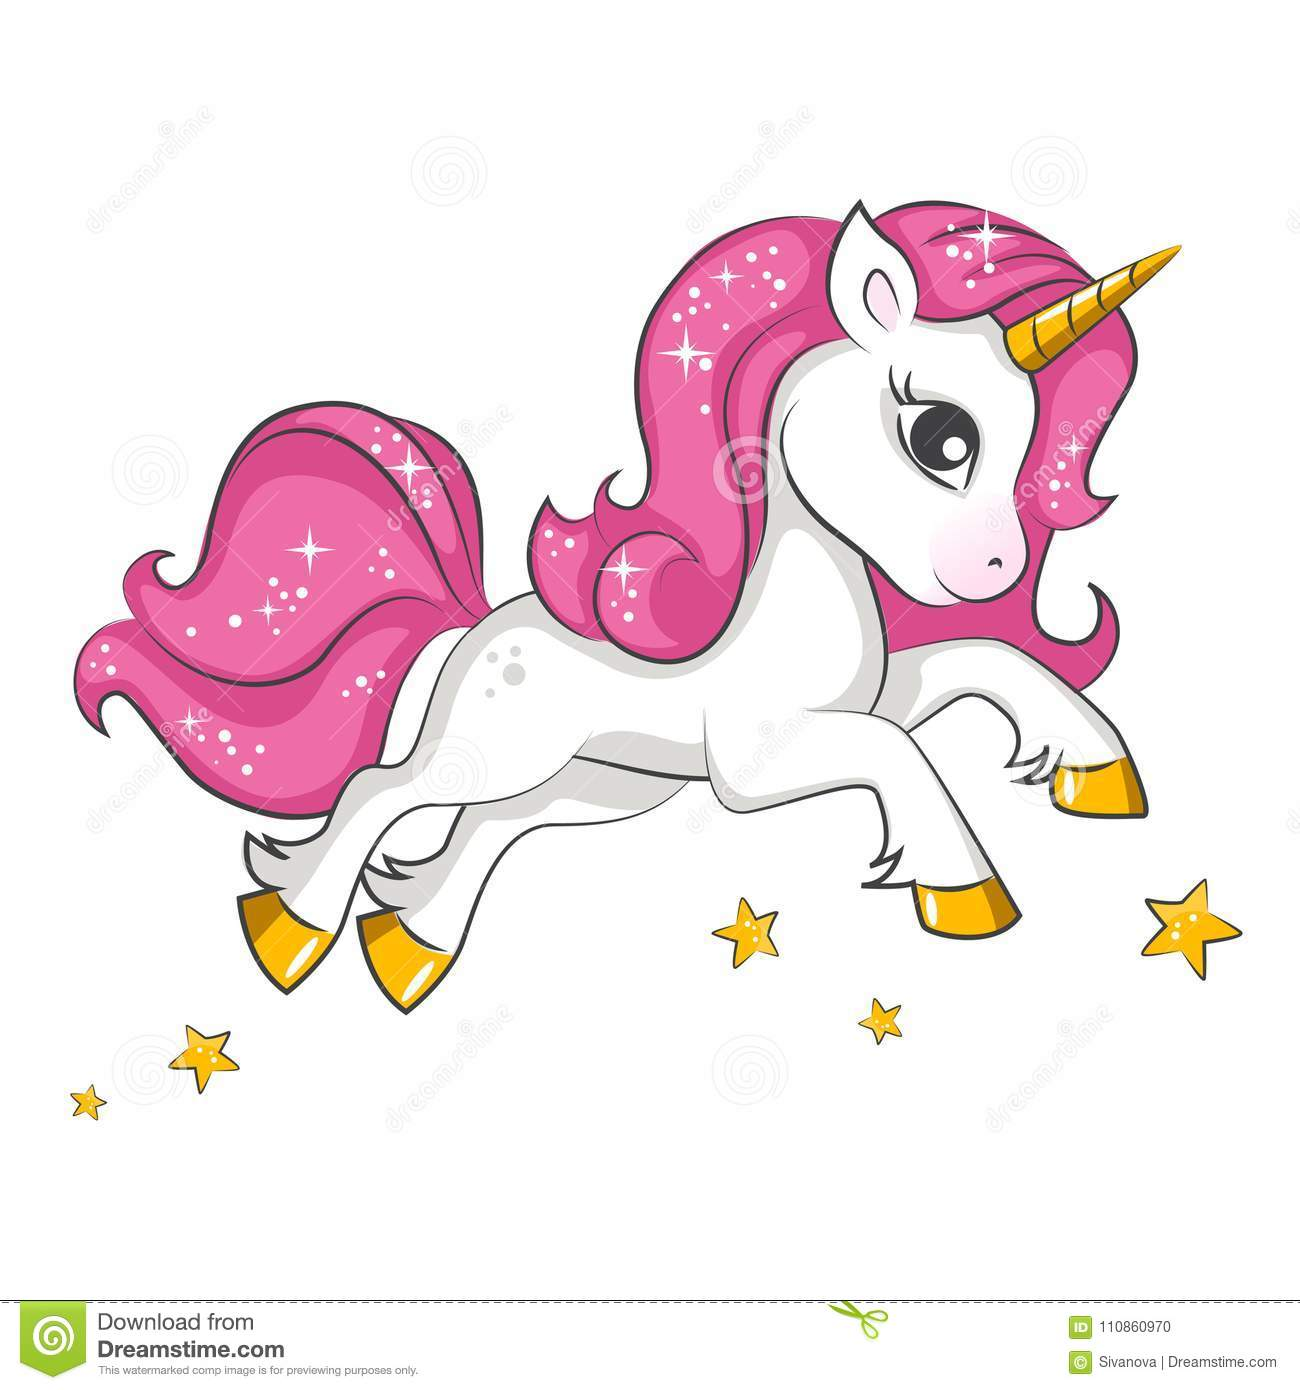 ccd5f56e9 Cute little pink magical unicorn. Vector design on white background. Print  for t-shirt. Romantic hand drawing illustration for children.